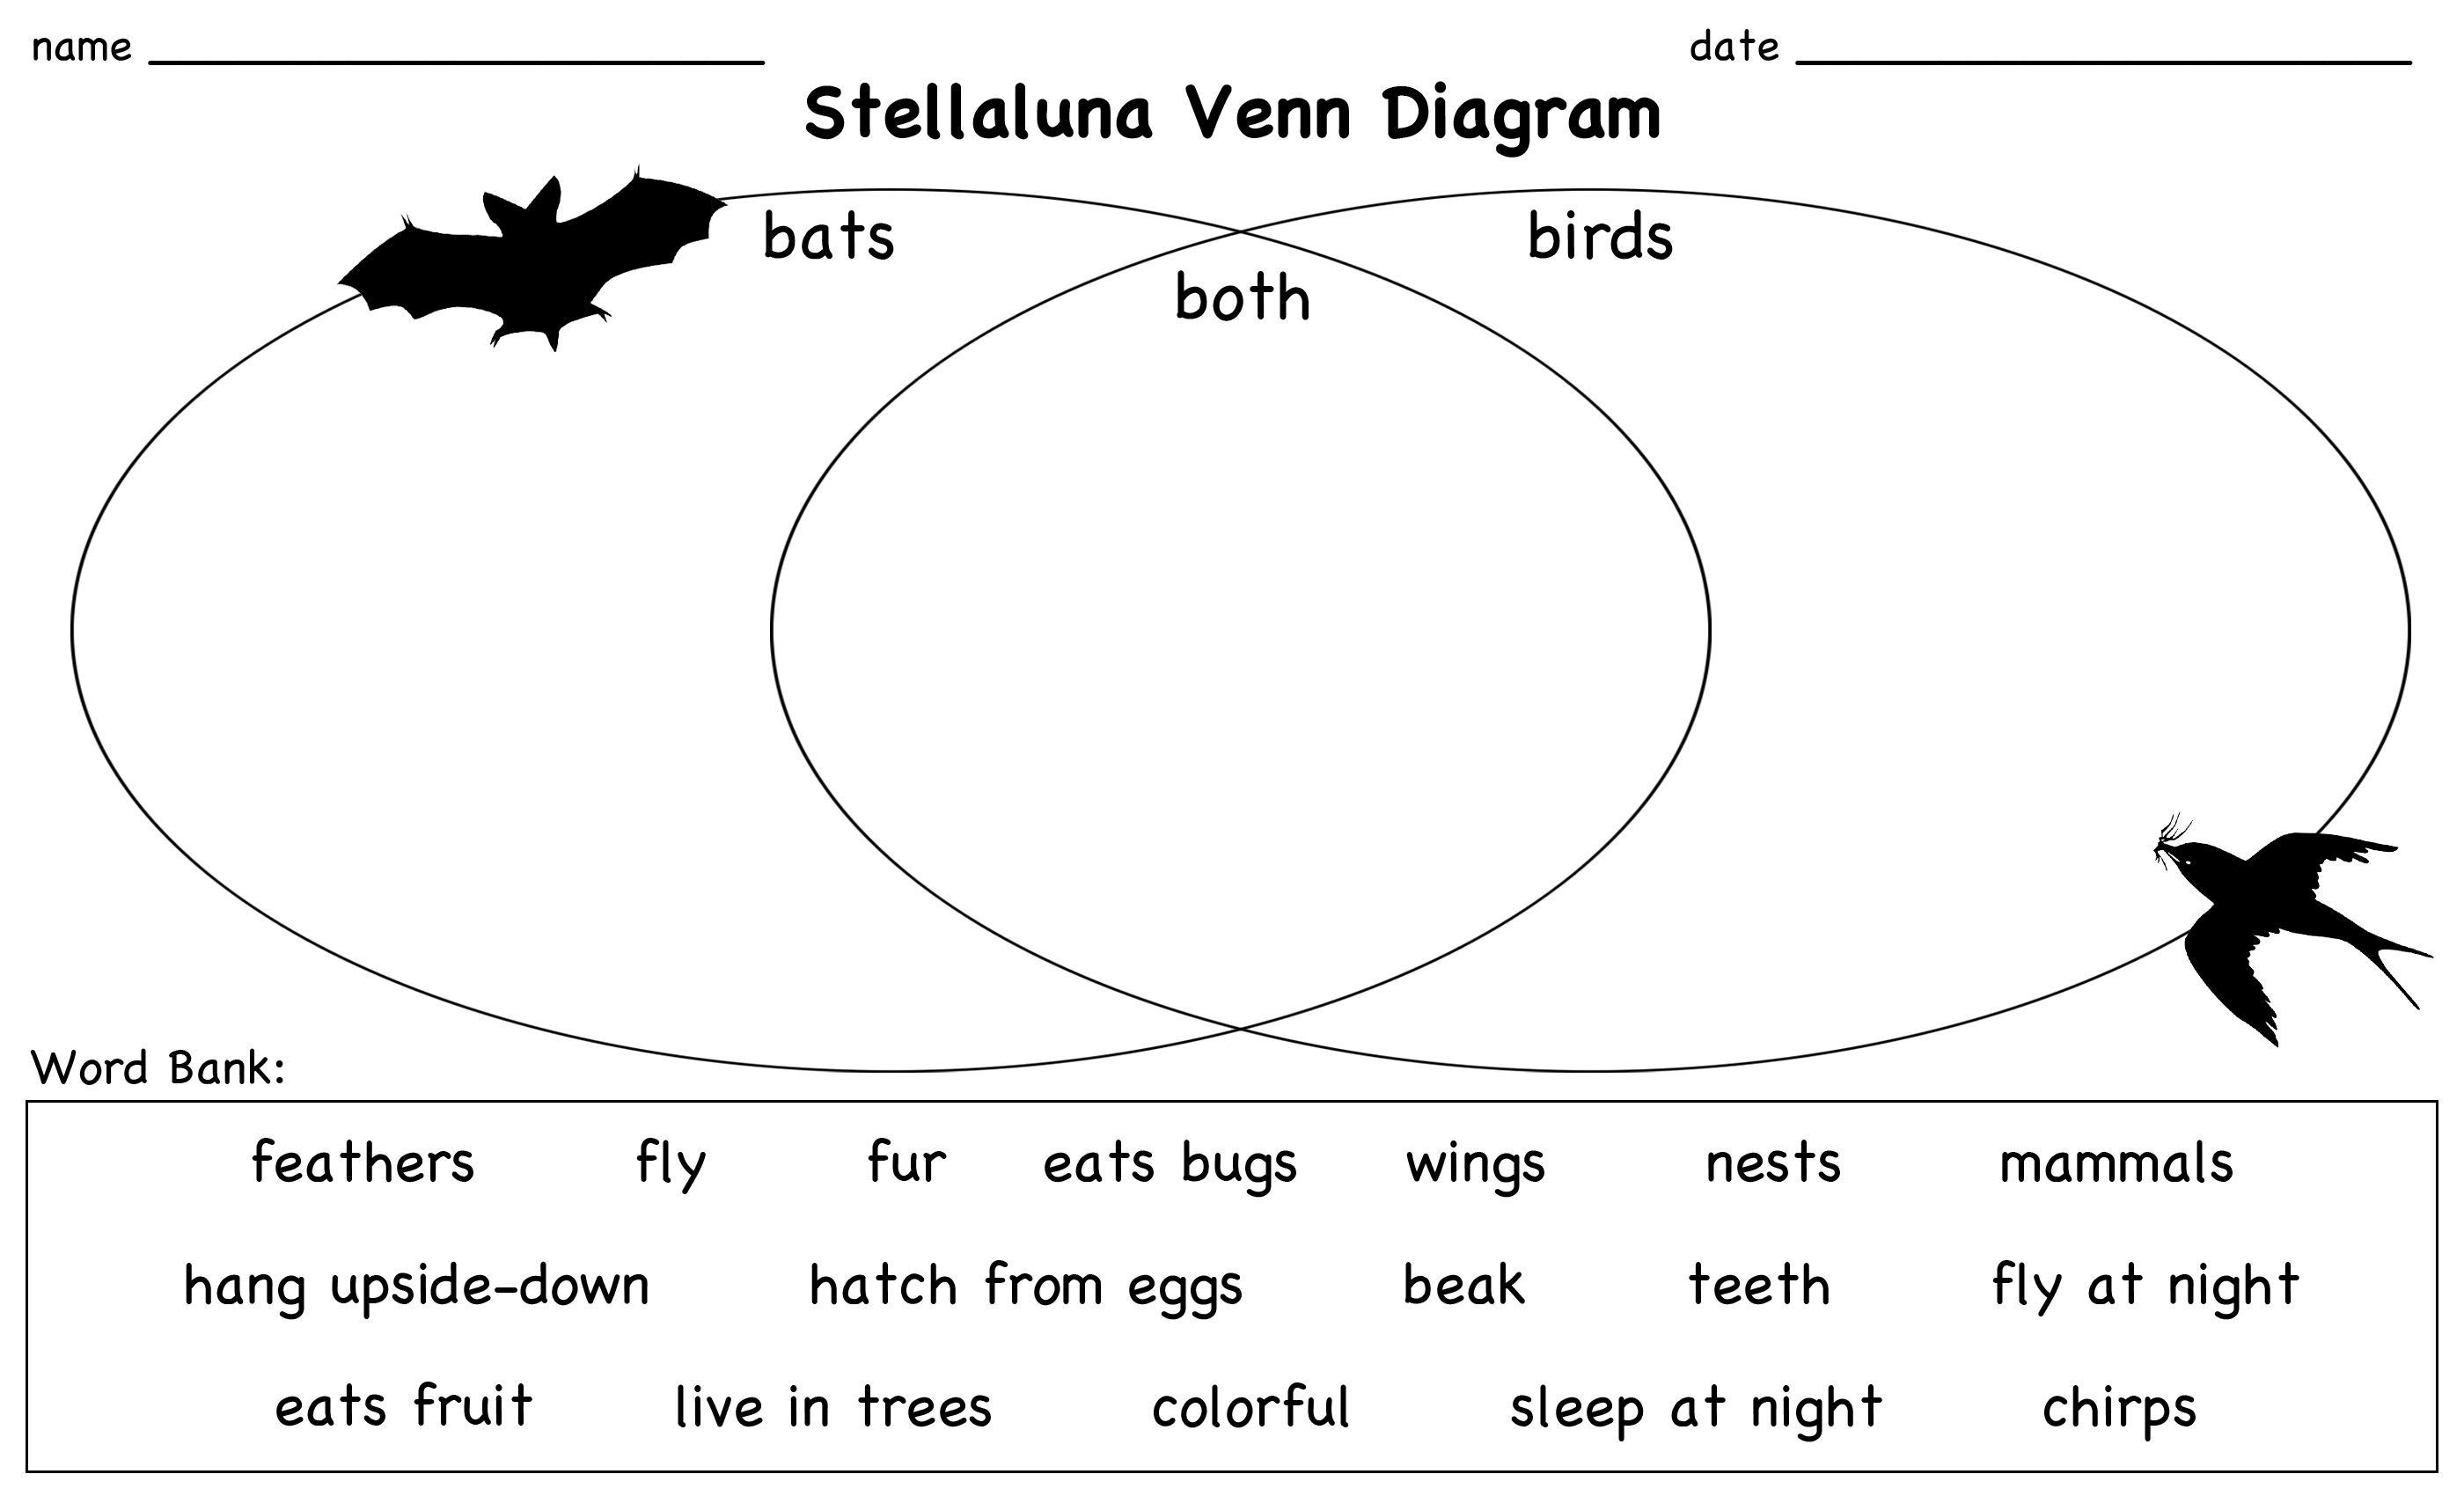 Stellaluna venn diagram lesson stellaluna venn diagrams and diagram stellaluna venn diagram lesson compare and contraststellalunavenn pooptronica